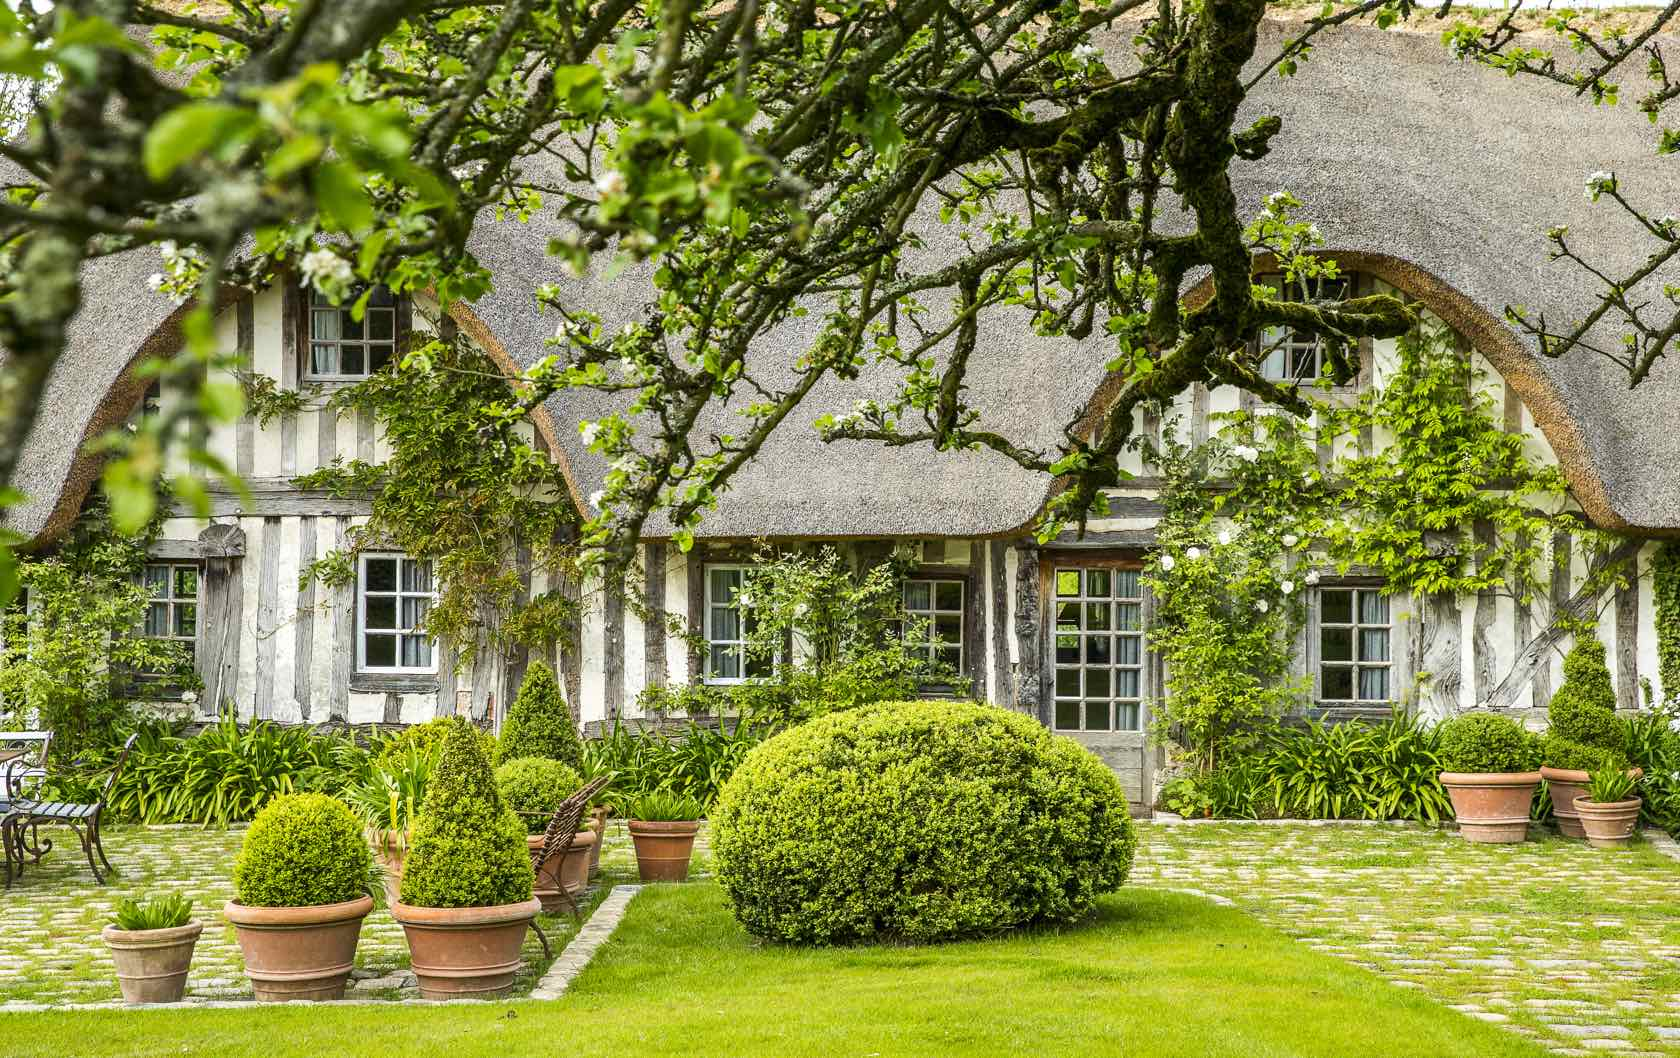 Introducing Our Vacation Rentals in Normandy France by Paris Perfect